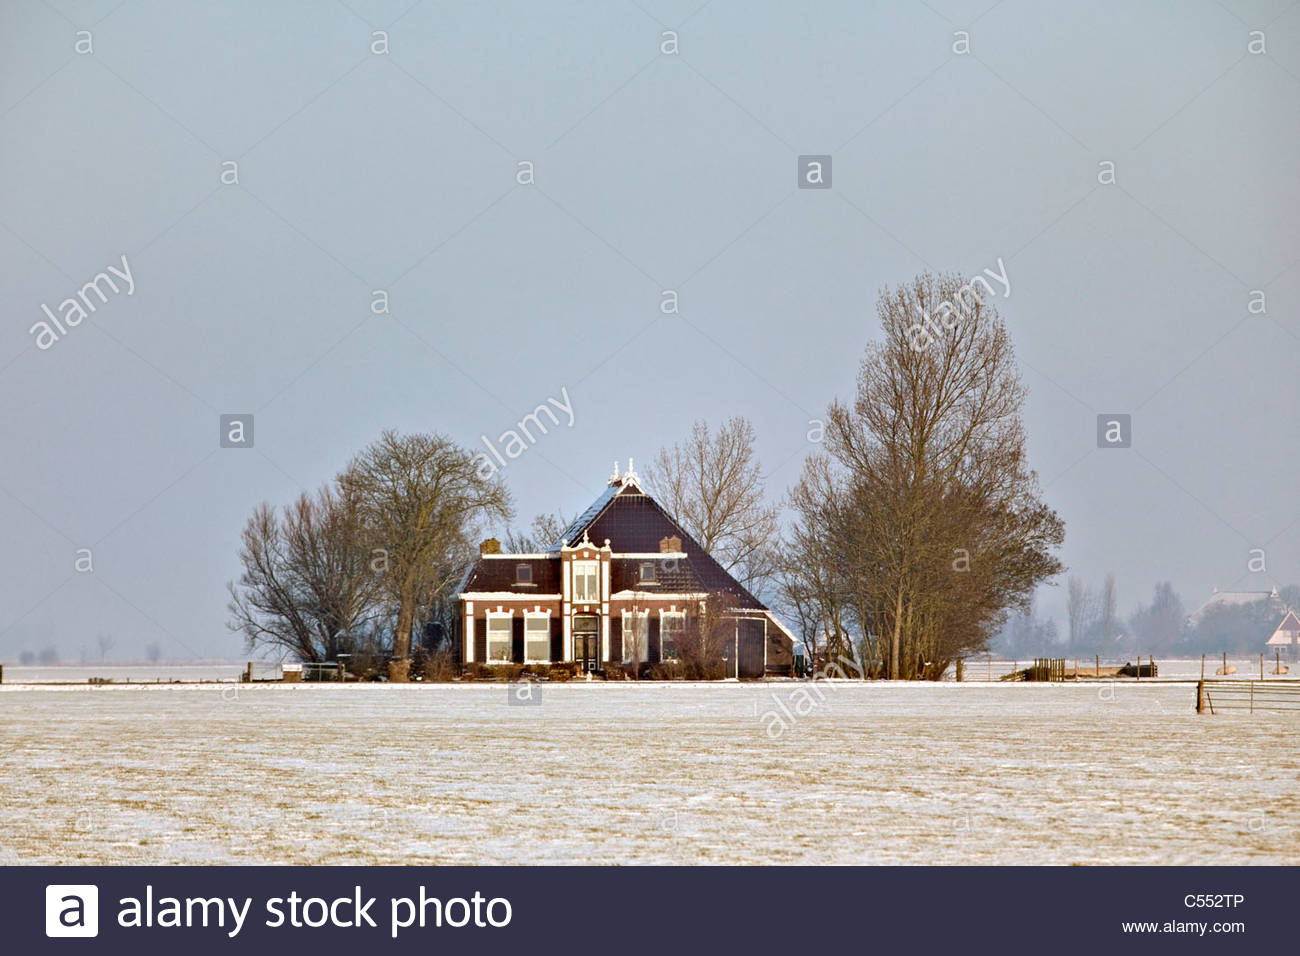 The Netherlands, Wommels, Farm in snow. - Stock Image